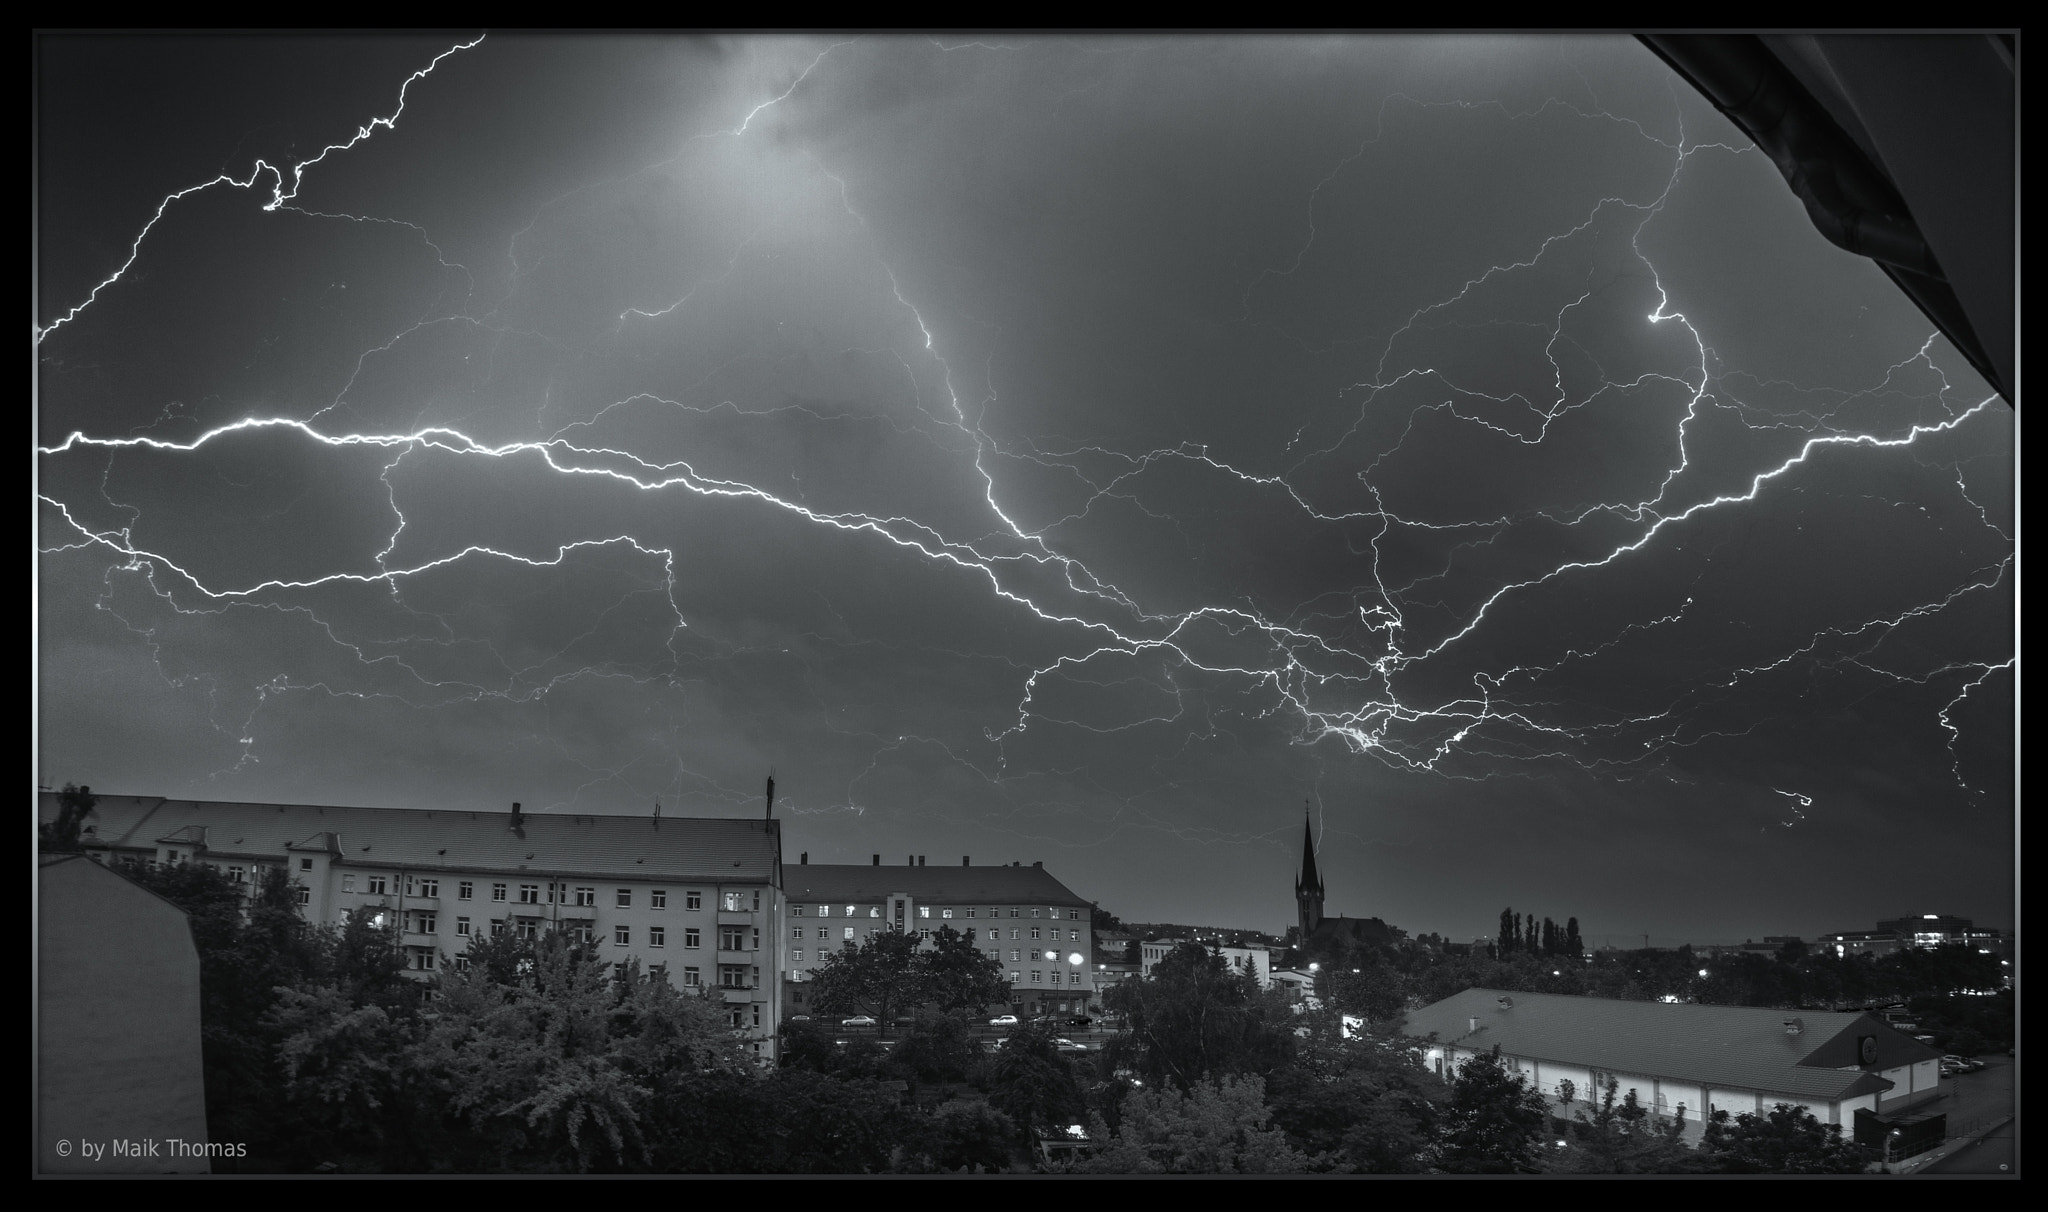 Photograph Lightnings over Dresden 02-07-2012 by Maik Thomas on 500px